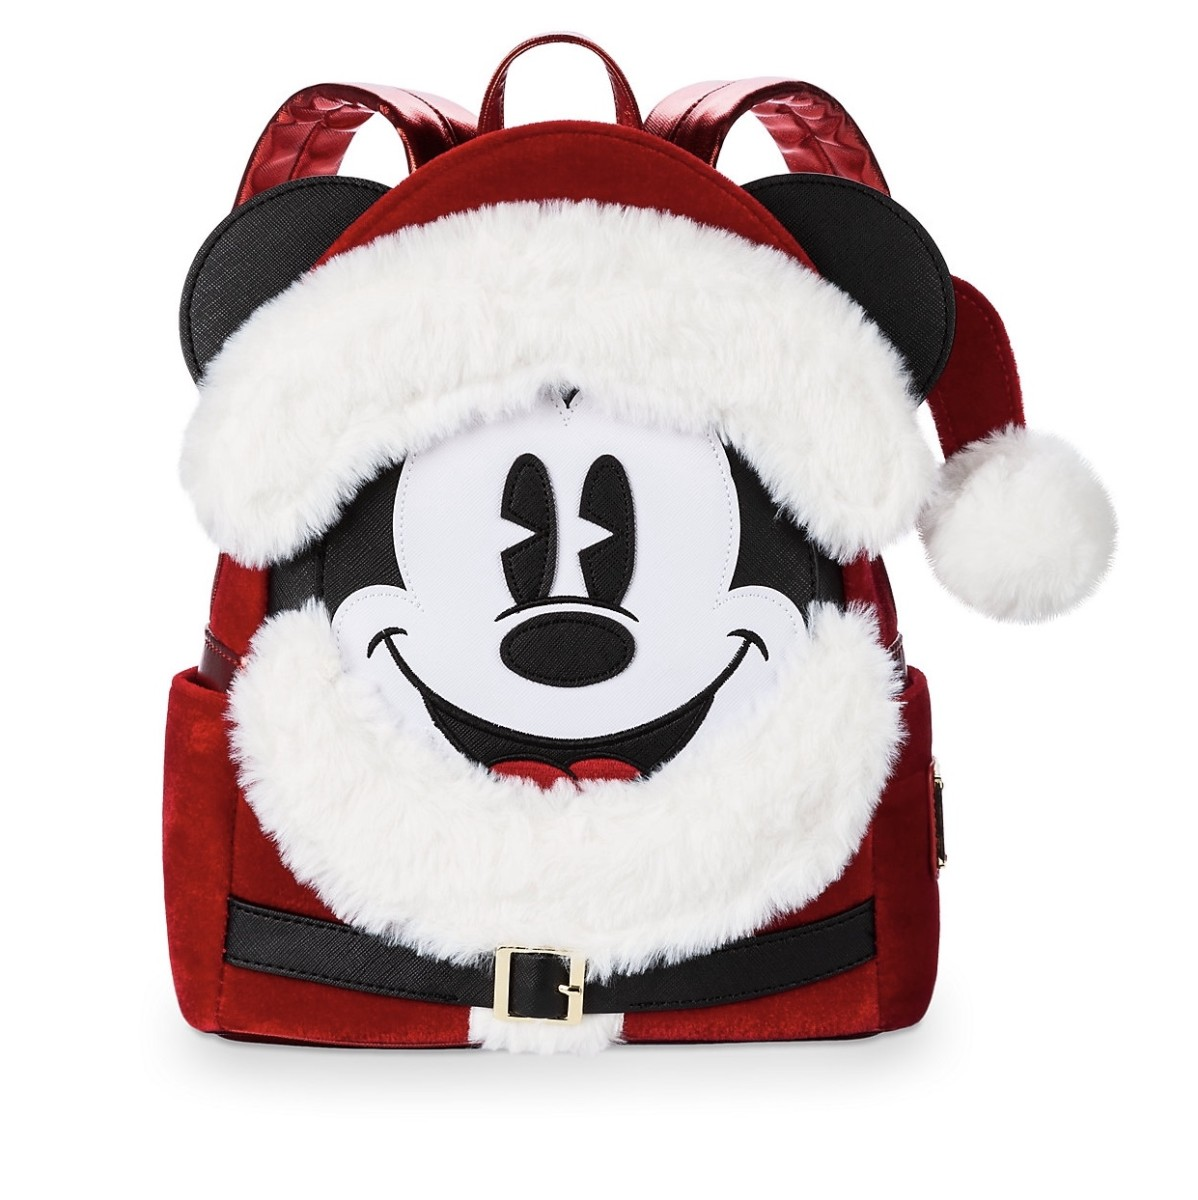 Holiday Merchandise Now Available at ShopDisney! #DisneyHolidays 12